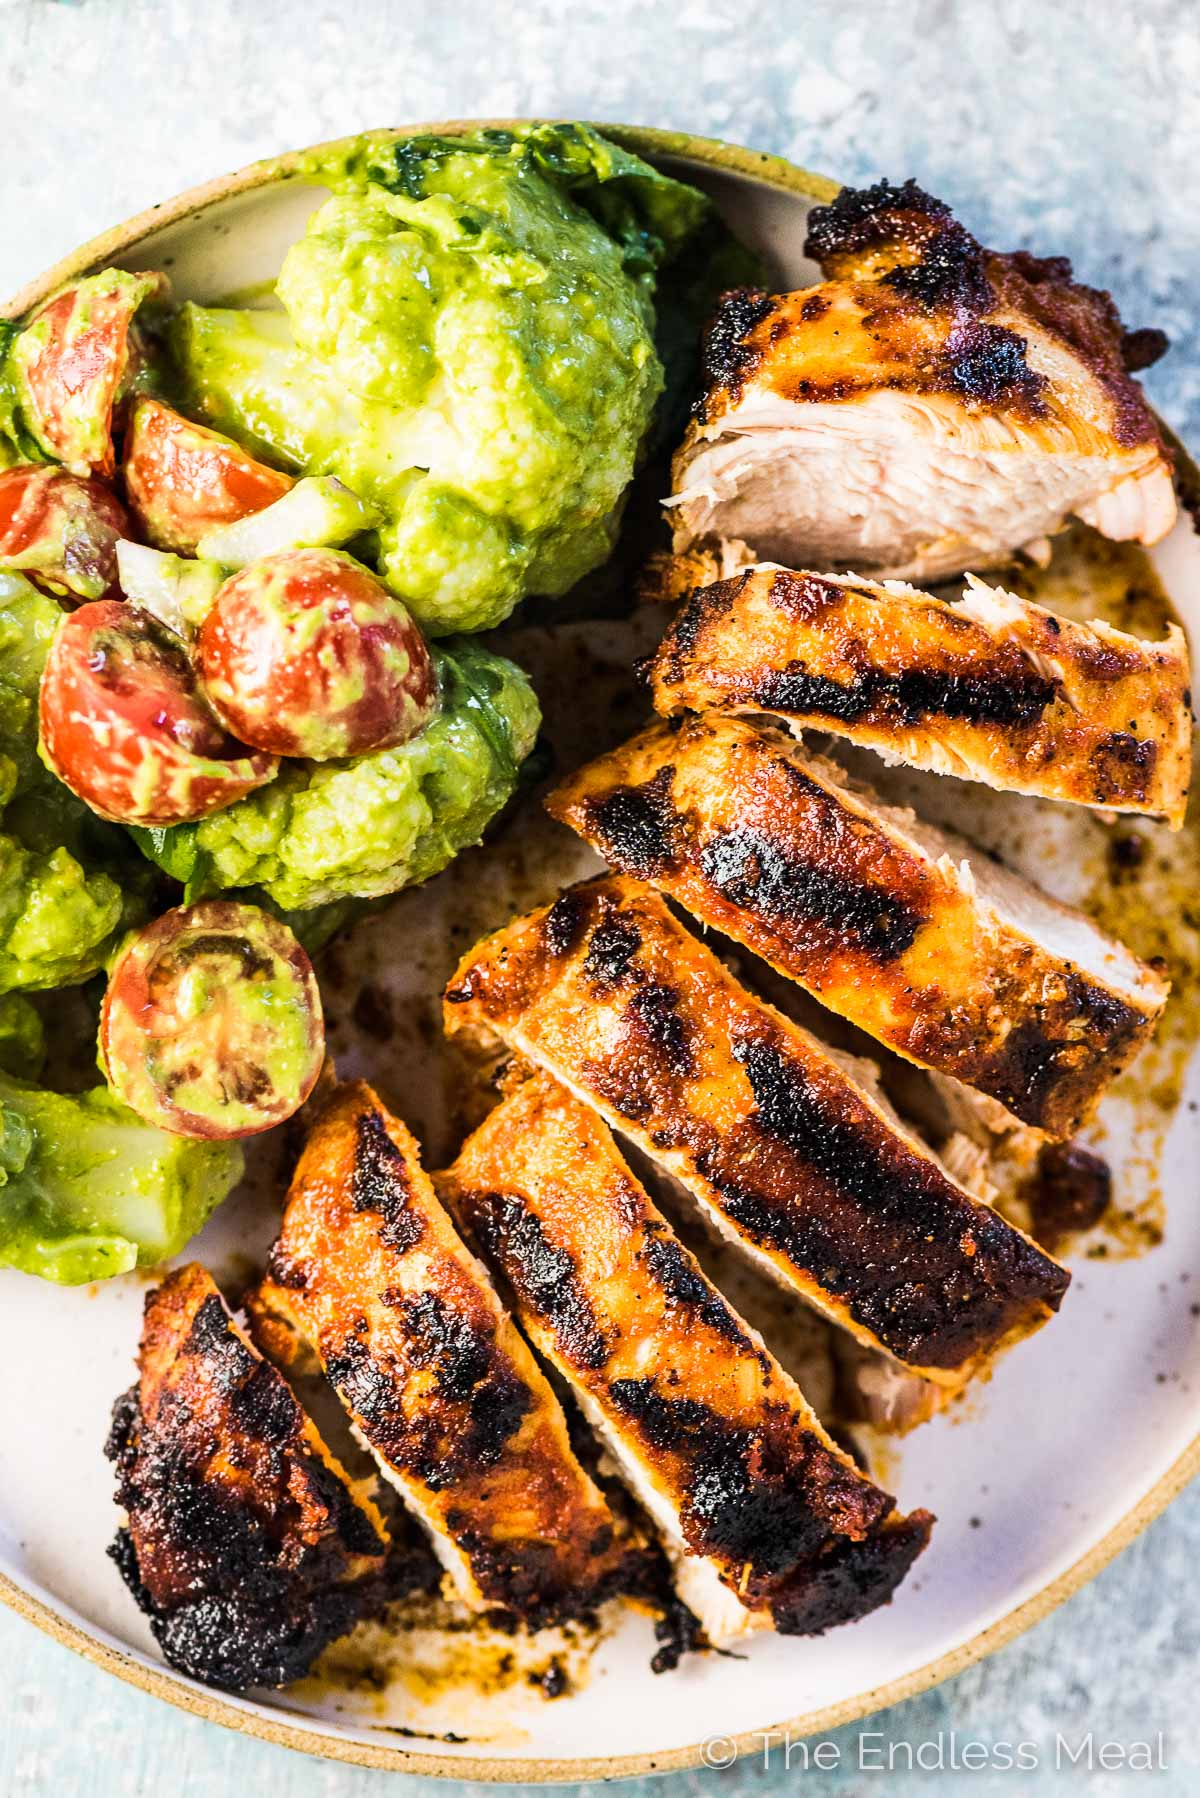 A juicy grilled chicken breast sliced on a plate beside cauliflower salad.